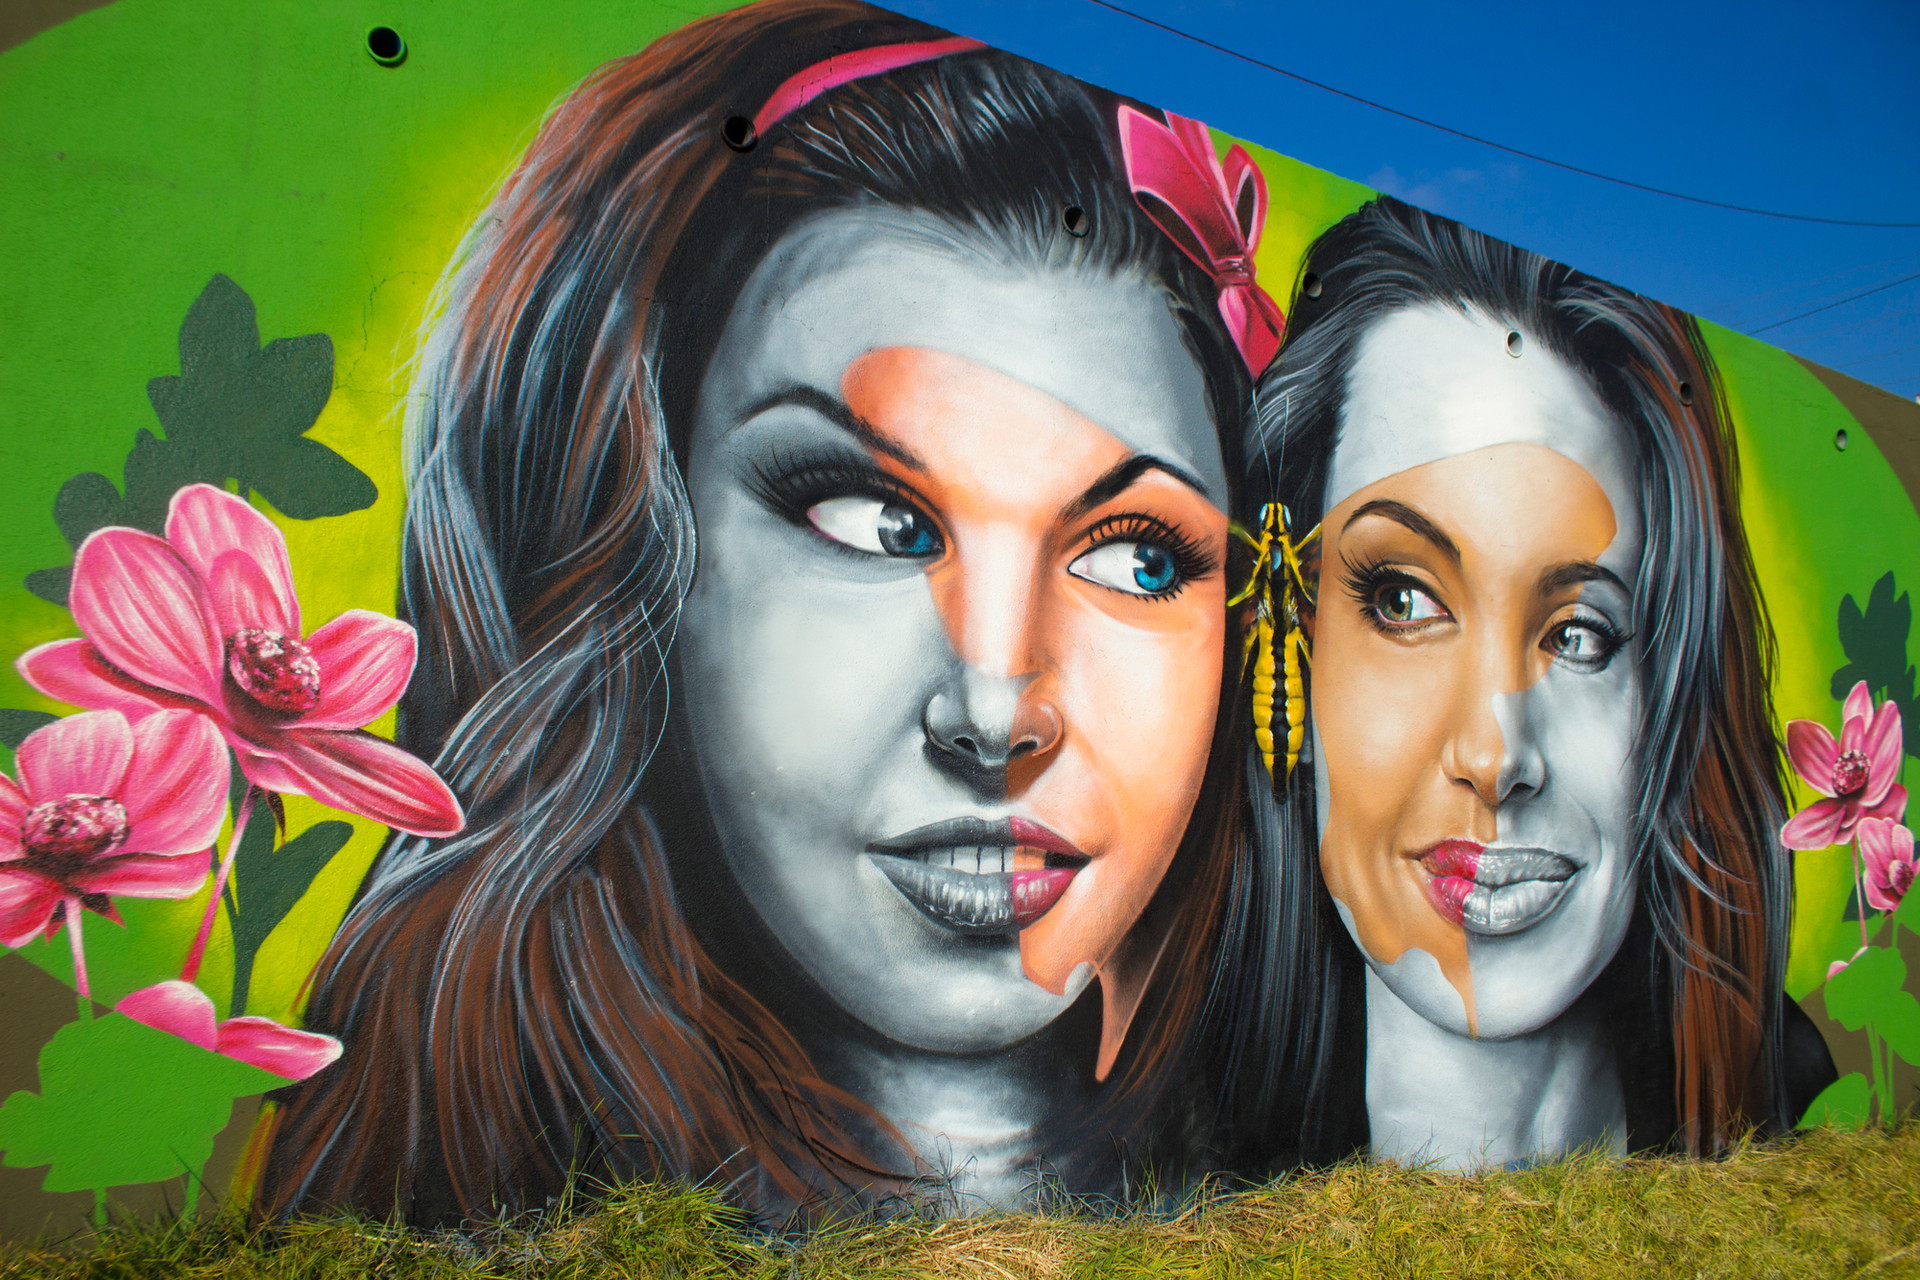 Graffiti by Nomen and Styler